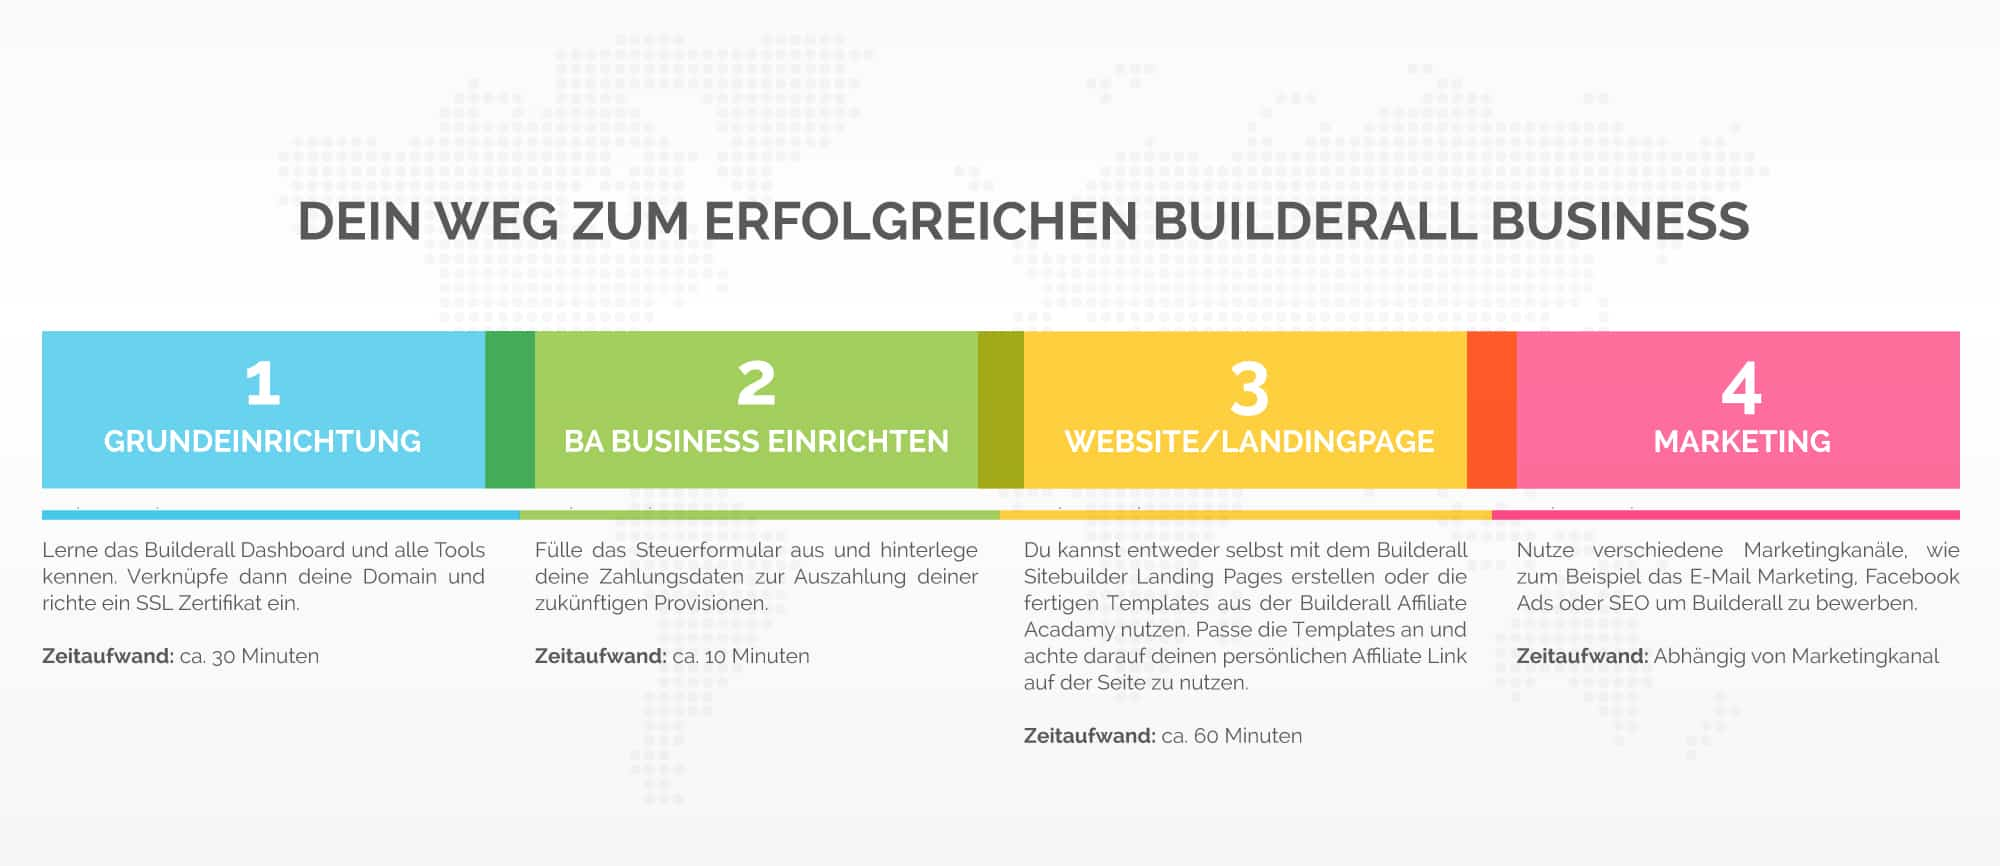 Builderall – das ultimative Online Business Tool 2020 im Test